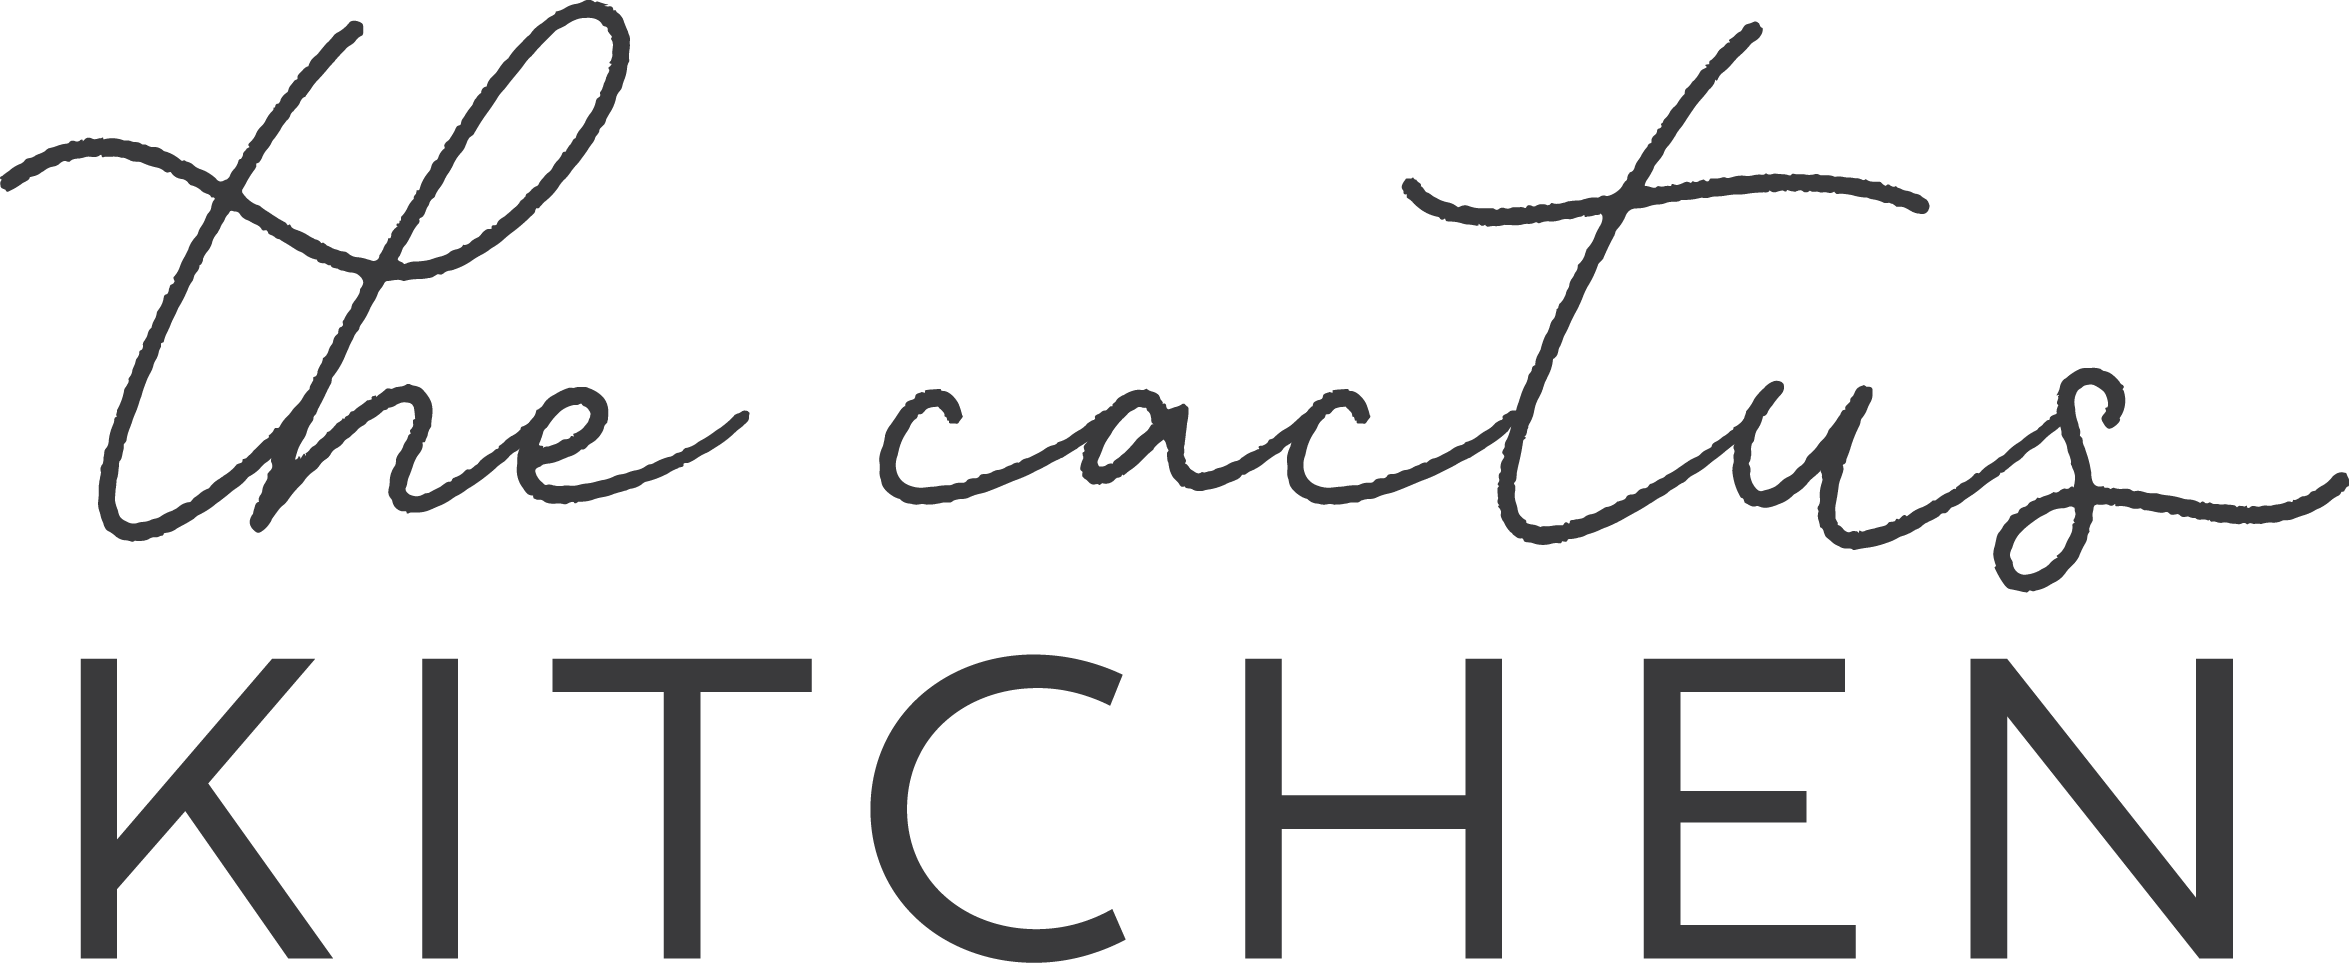 The Cactus Kitchen